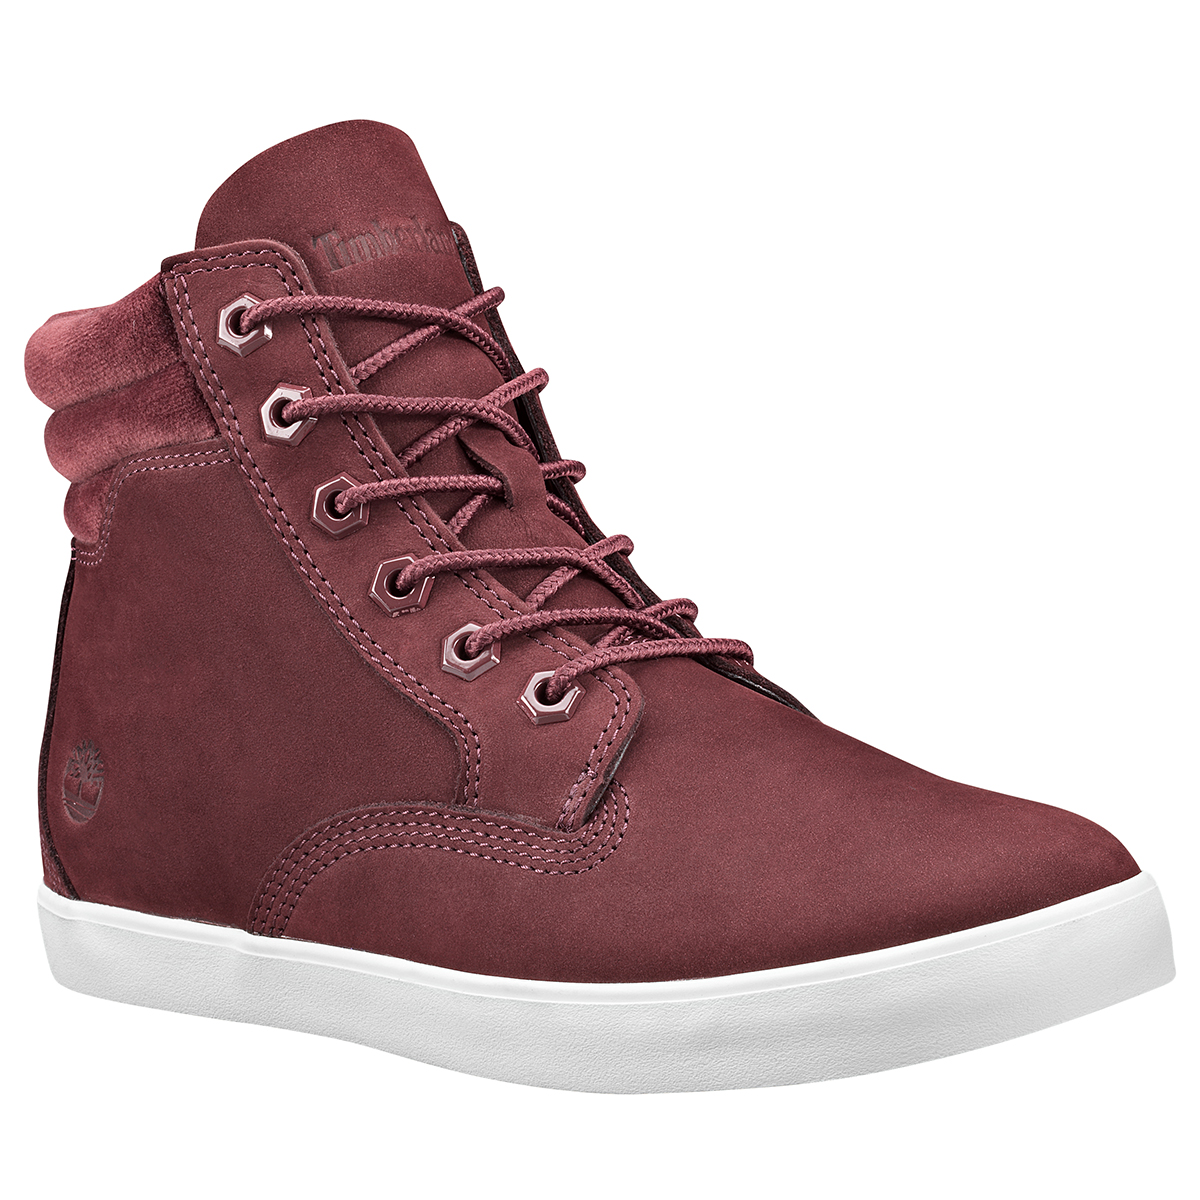 Timberland Women's Dausette Sneaker Boot - Red, 7.5